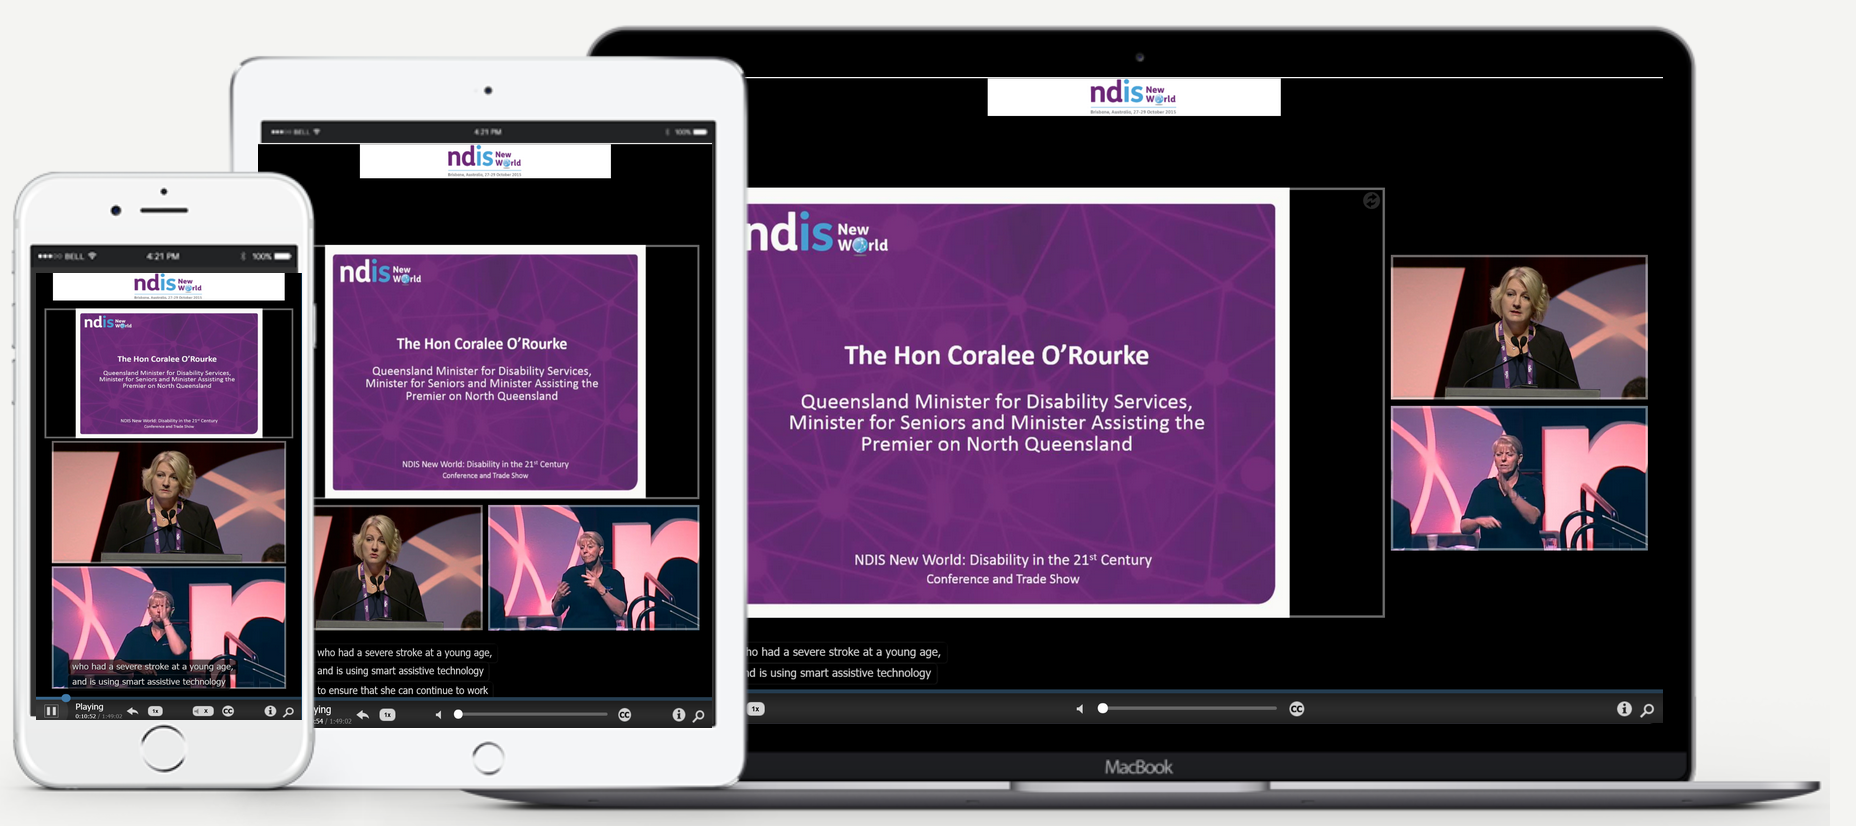 ndis_alldevices